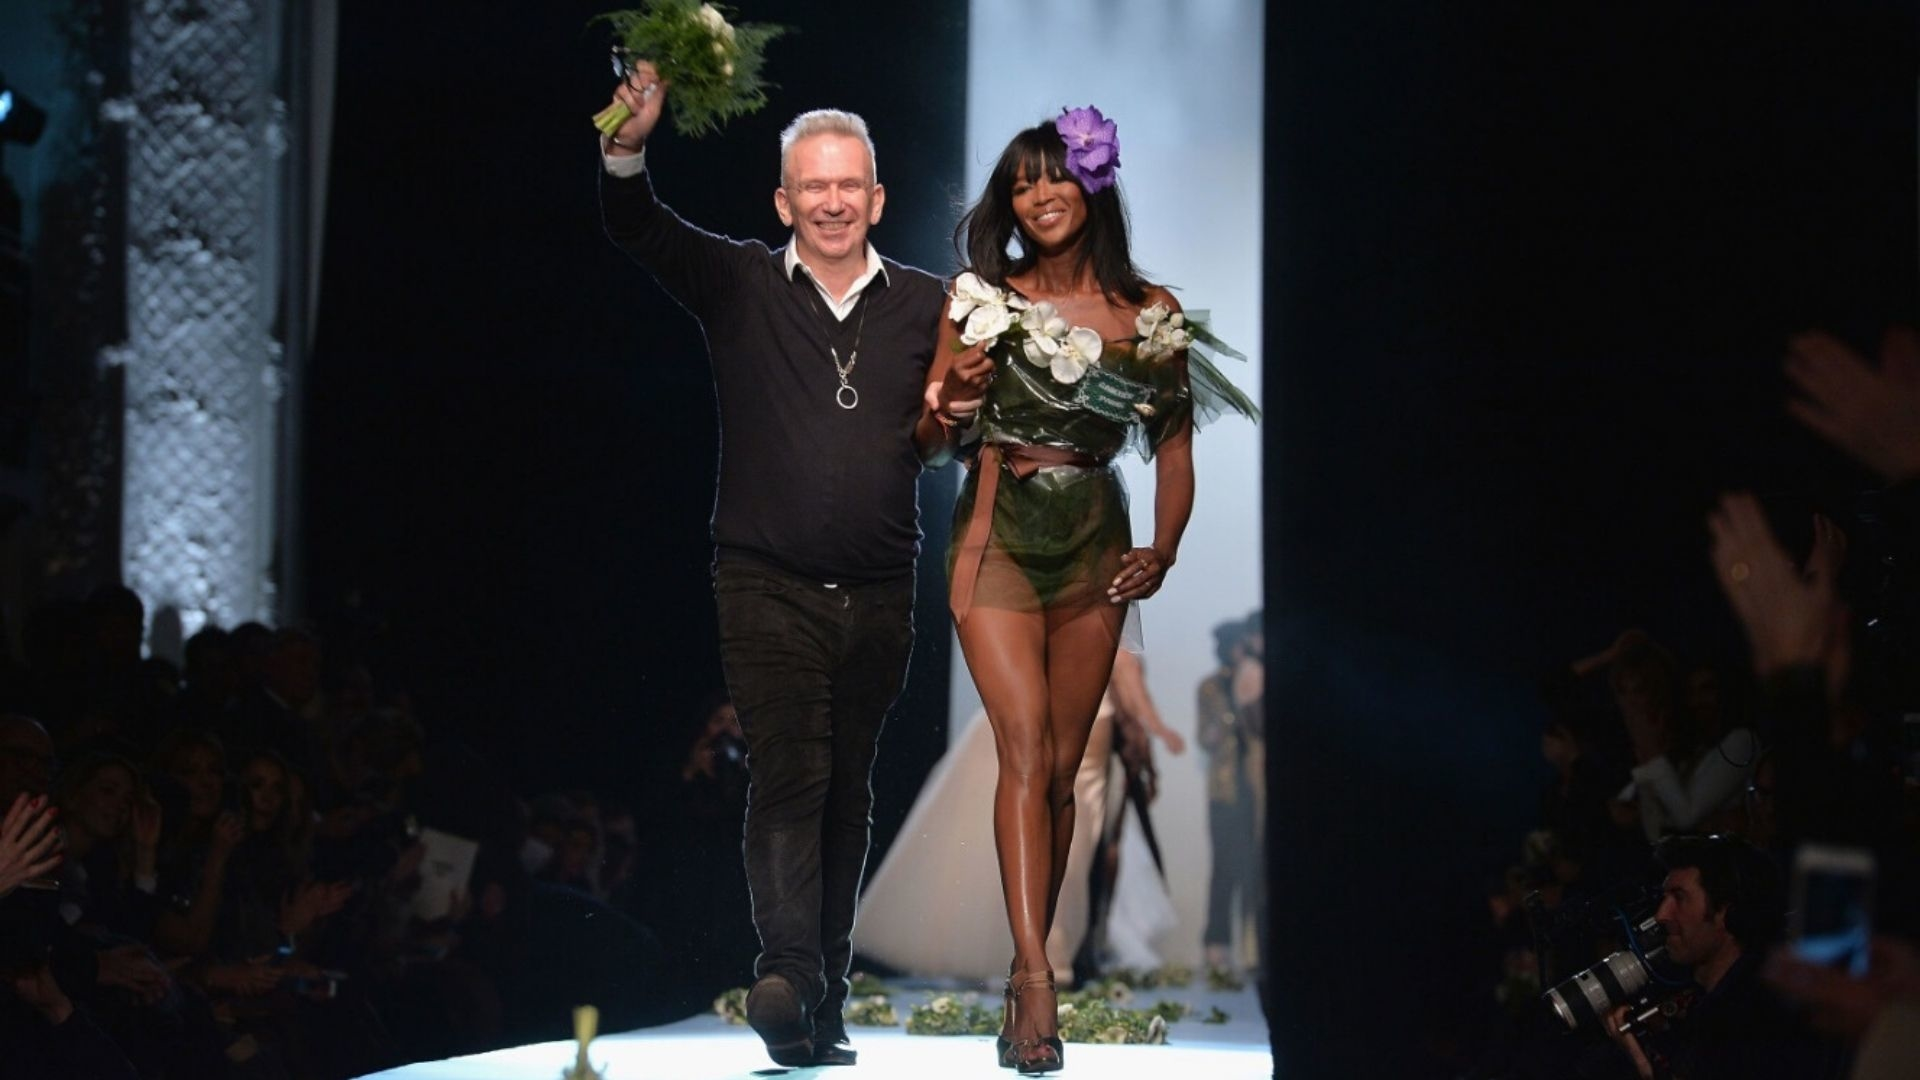 Jean Paul Gaultier To Retire After 50 Years In Fashion